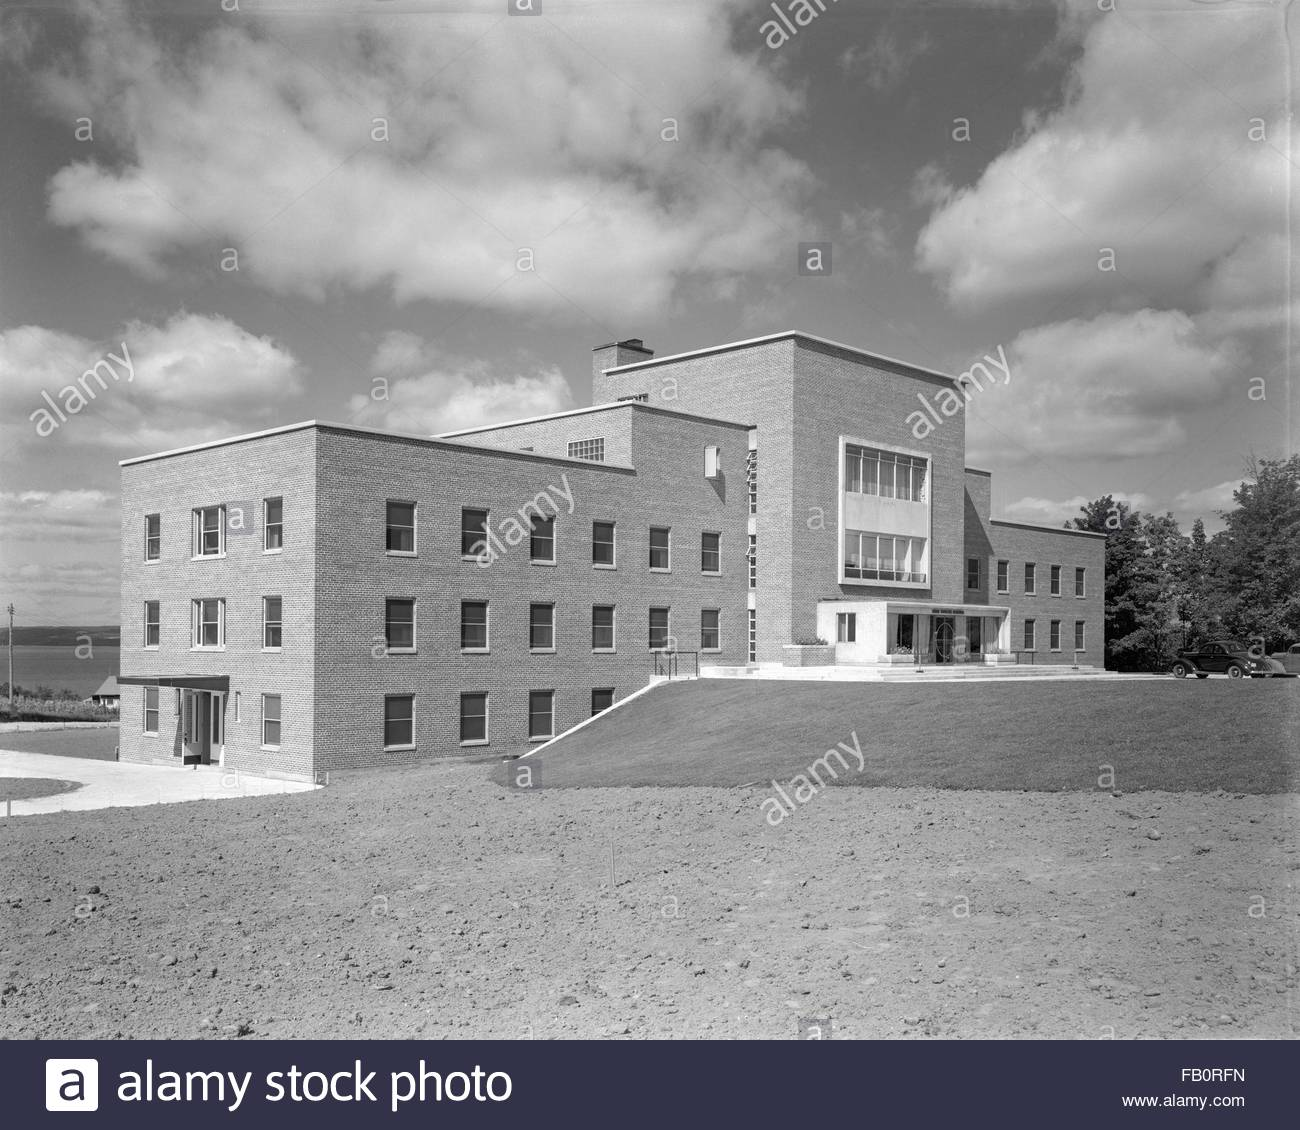 Little Traverse Hospital in Petoskey (Mich.), 1939 Sept. 27. Exterior perspective view - Stock Image